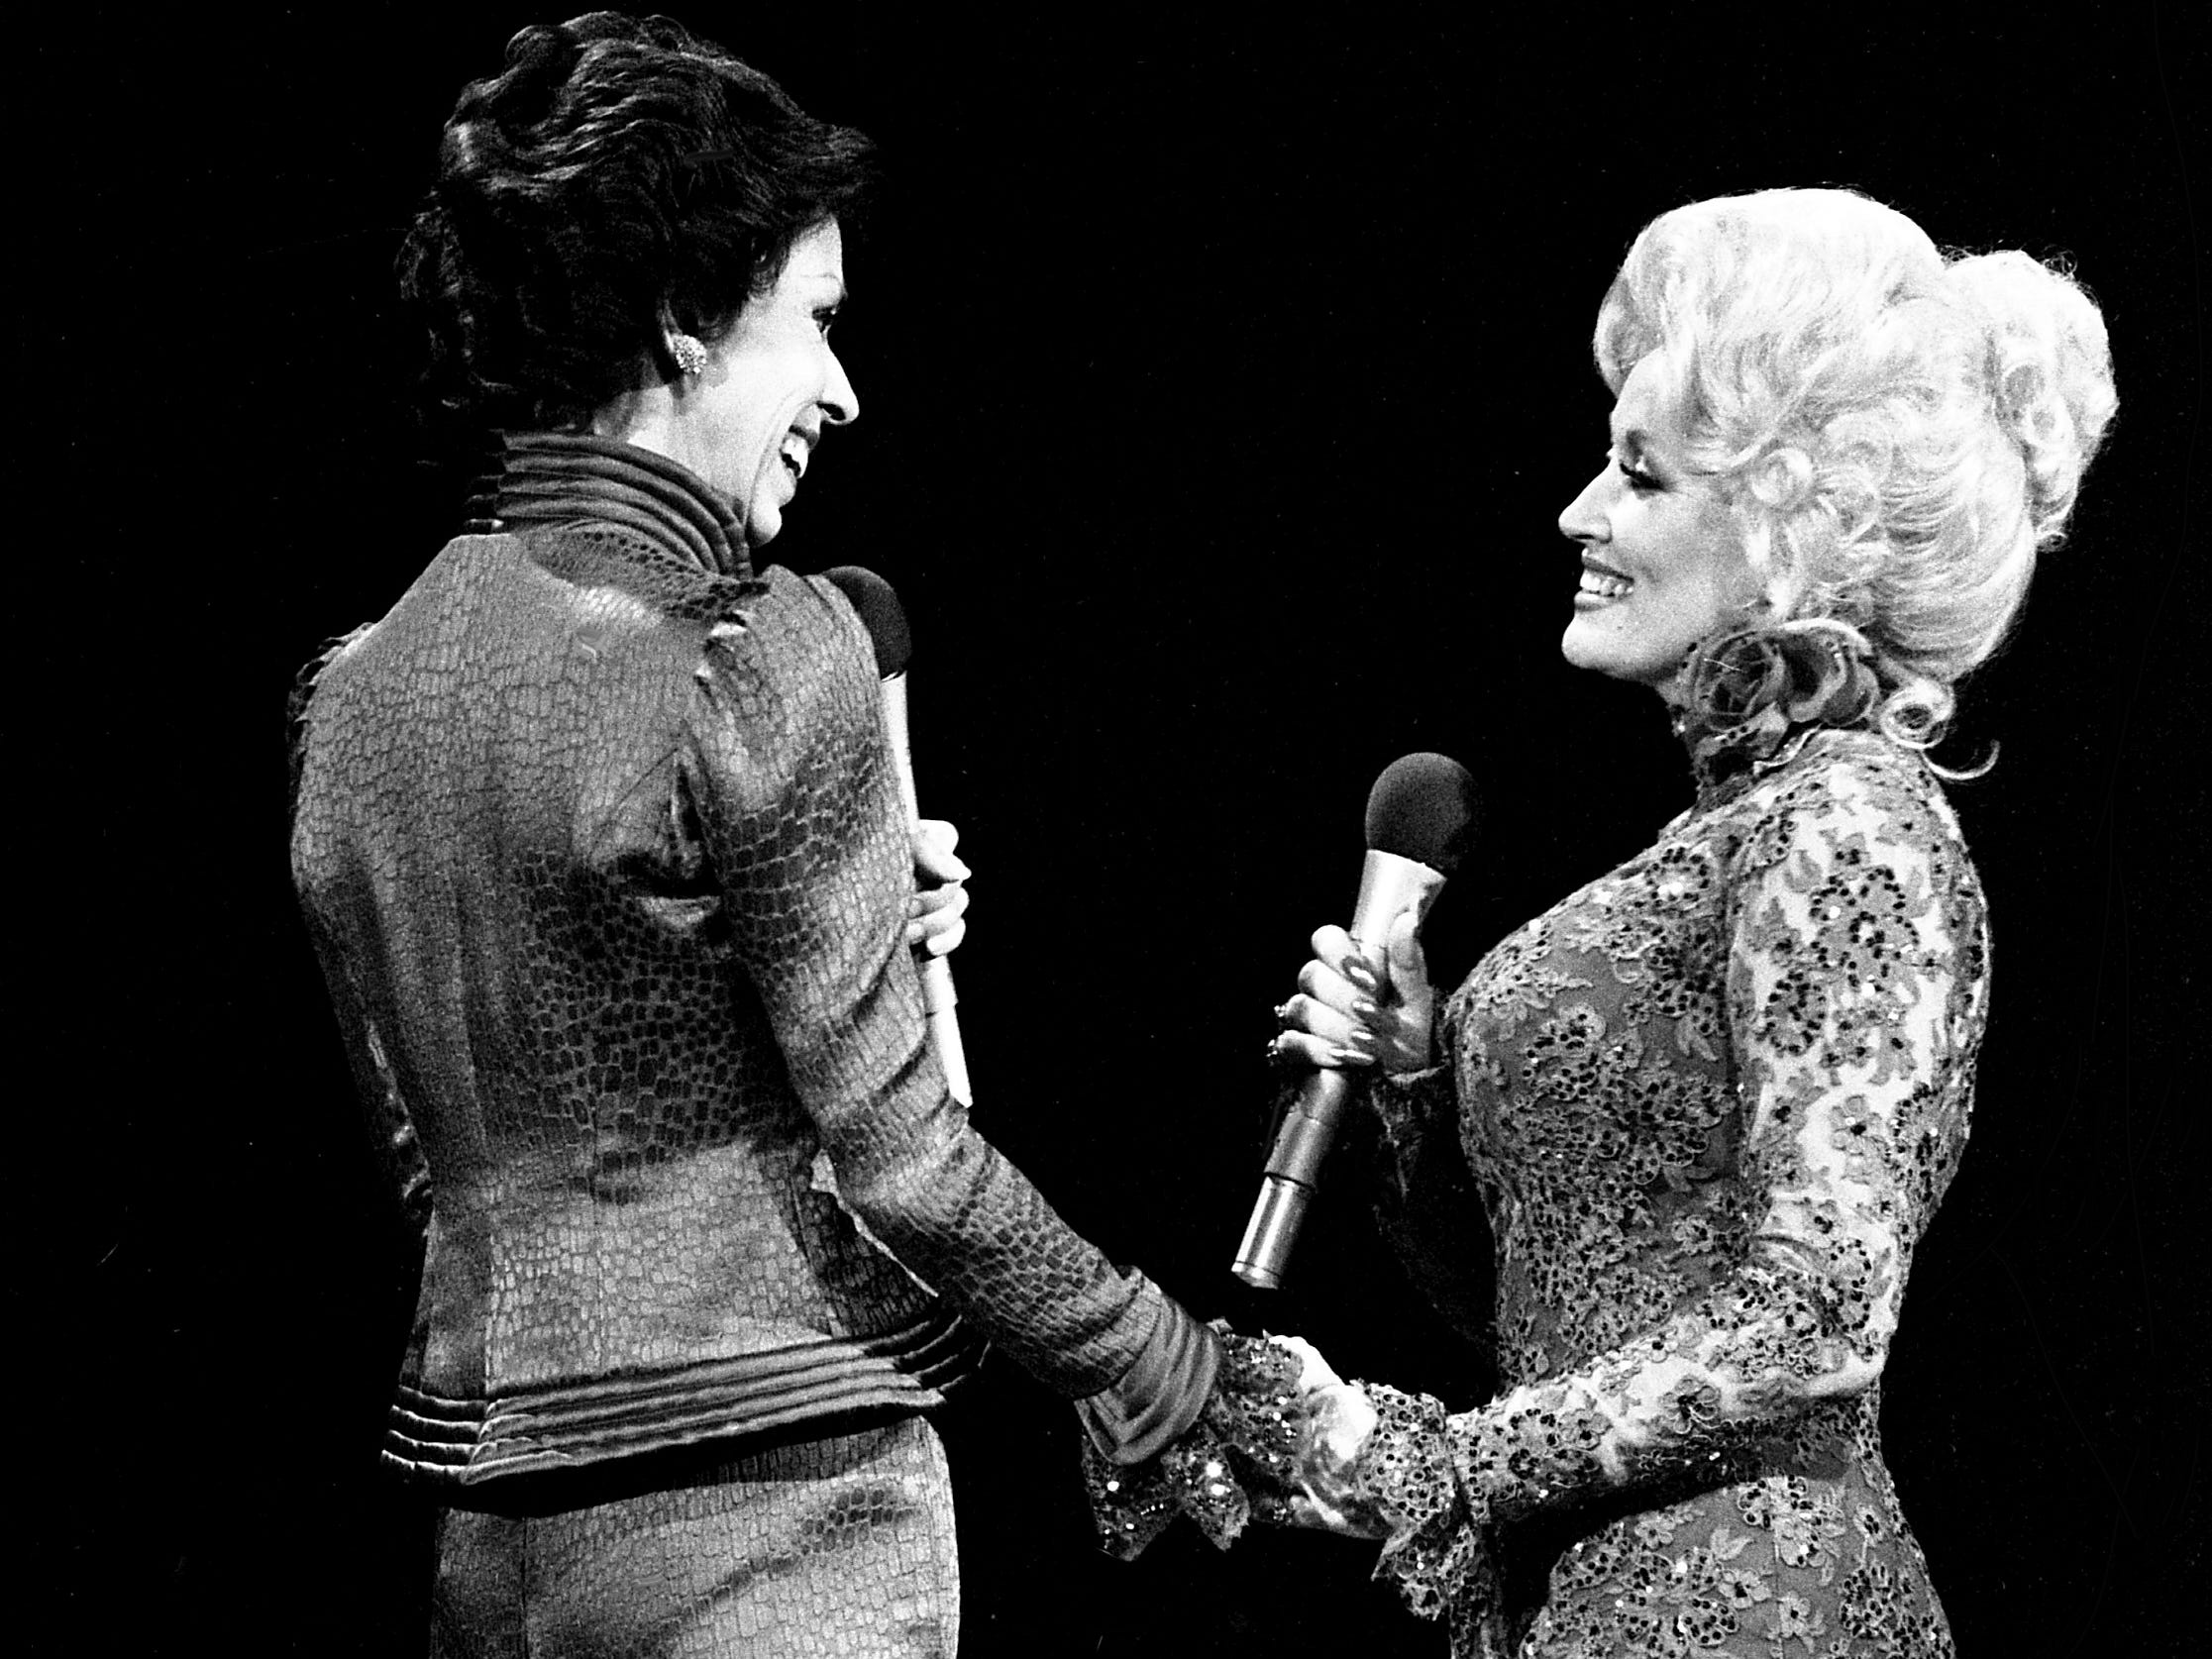 """With the audience on their feet and cheering, Carol Burnett and Dolly Parton share a moment after they finished their mock-melodramatic love song skit during the taping of the """"Dolly and Carol in Nashville"""" television special at the Grand Ole Opry House Jan. 10, 1979."""